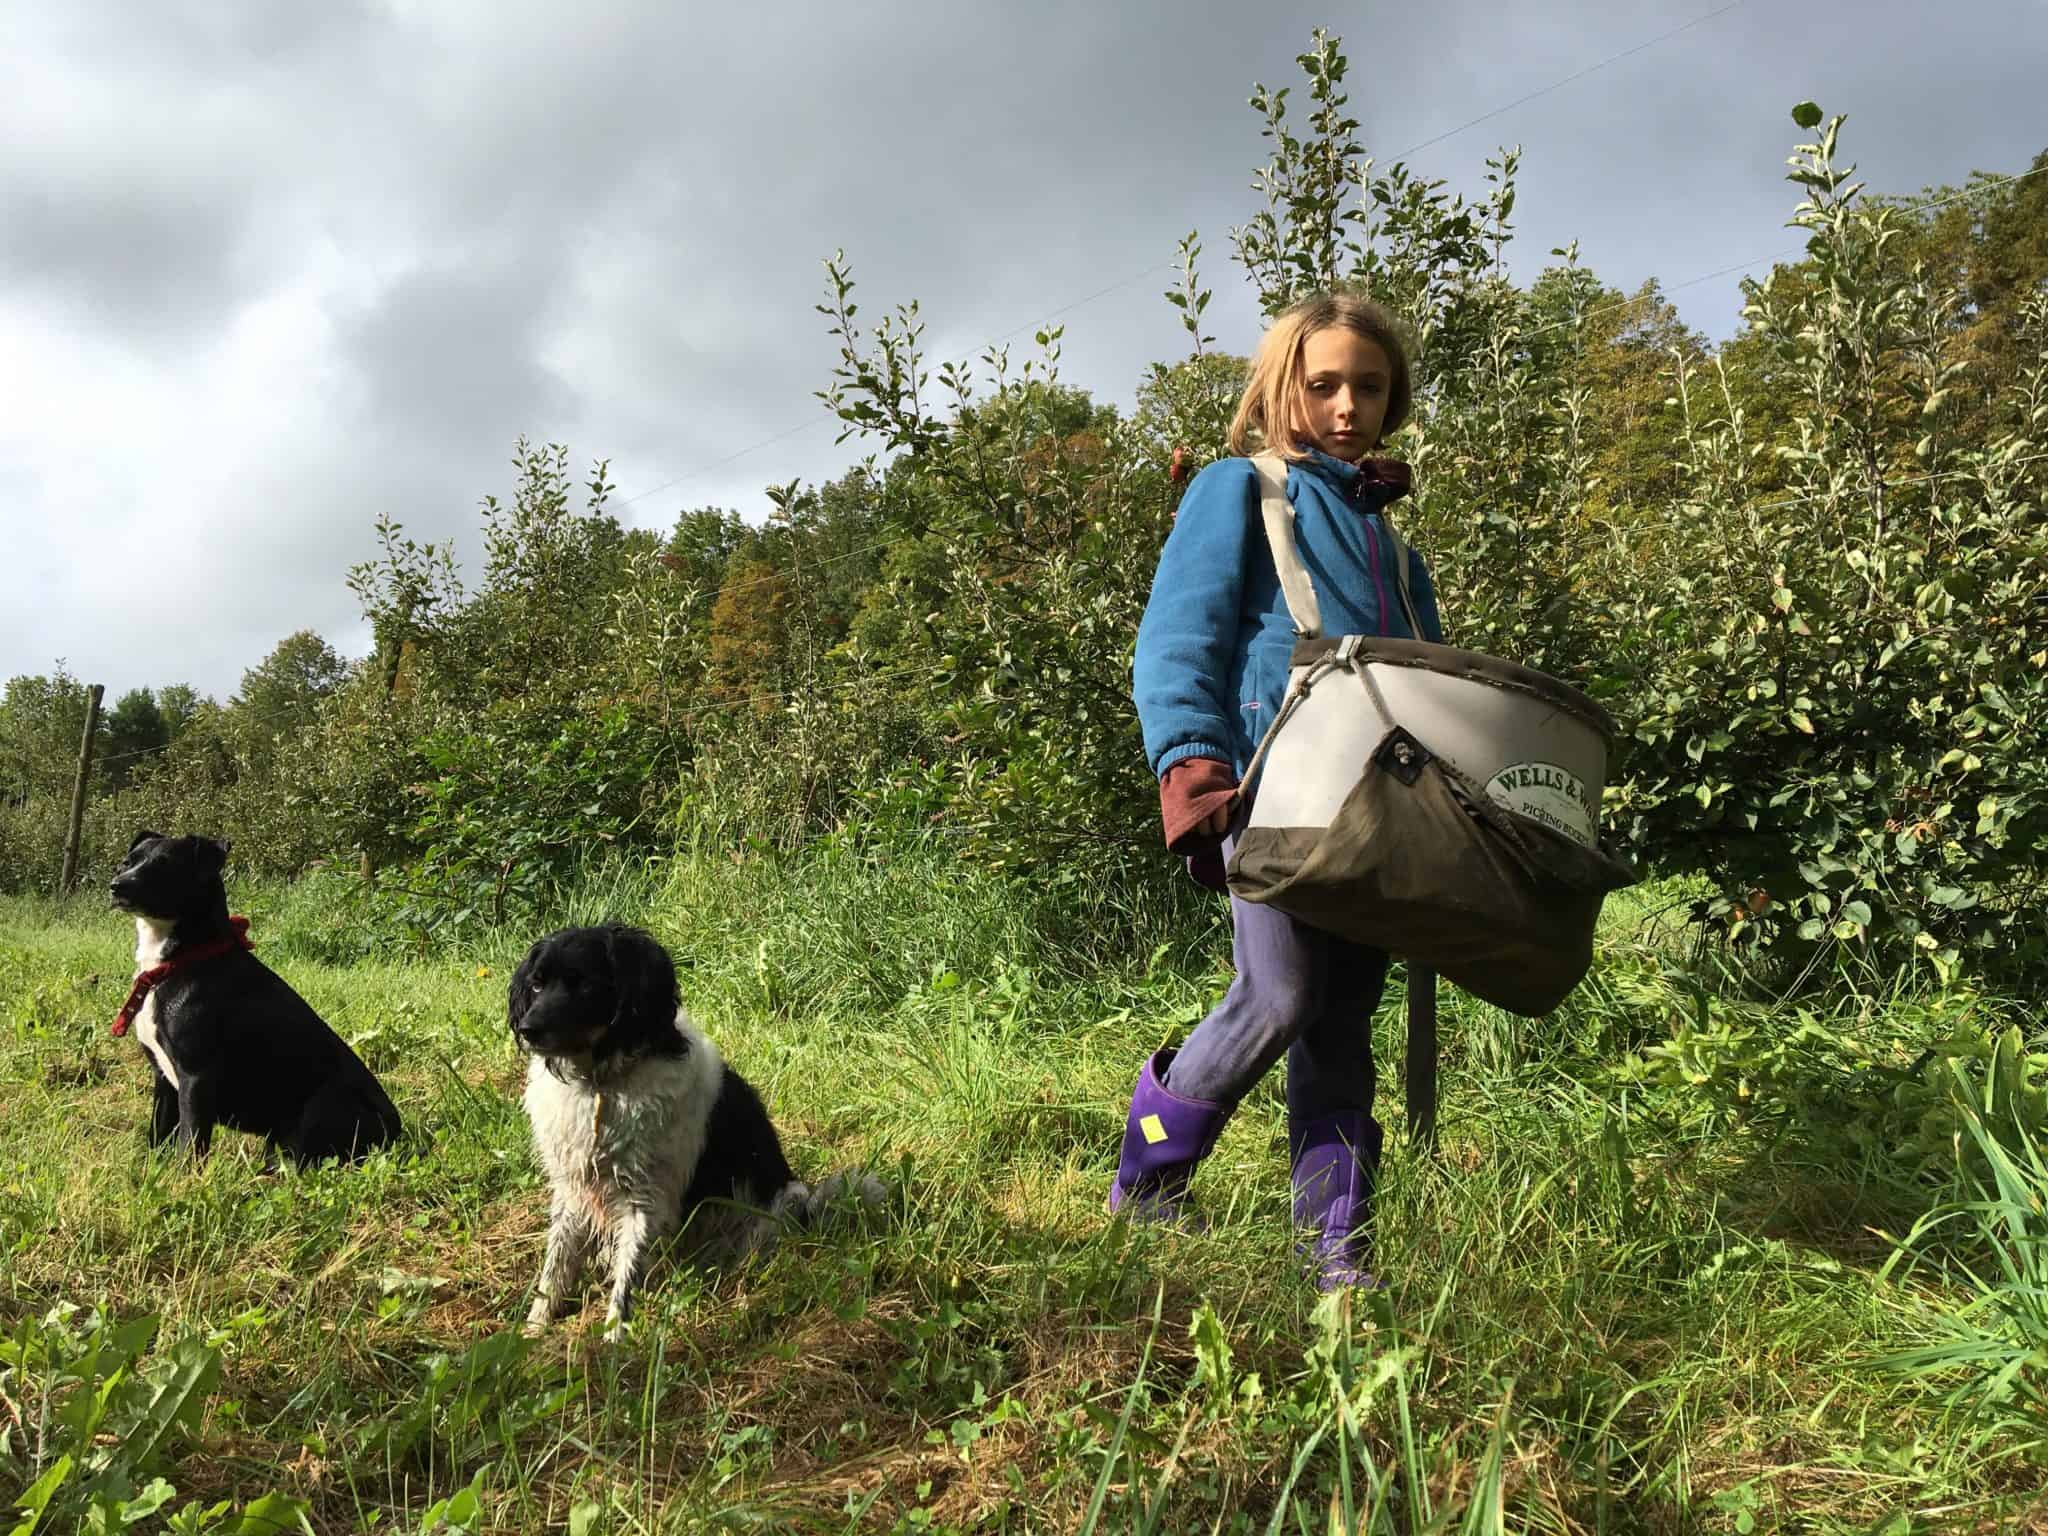 Picking cider apples with dogs.